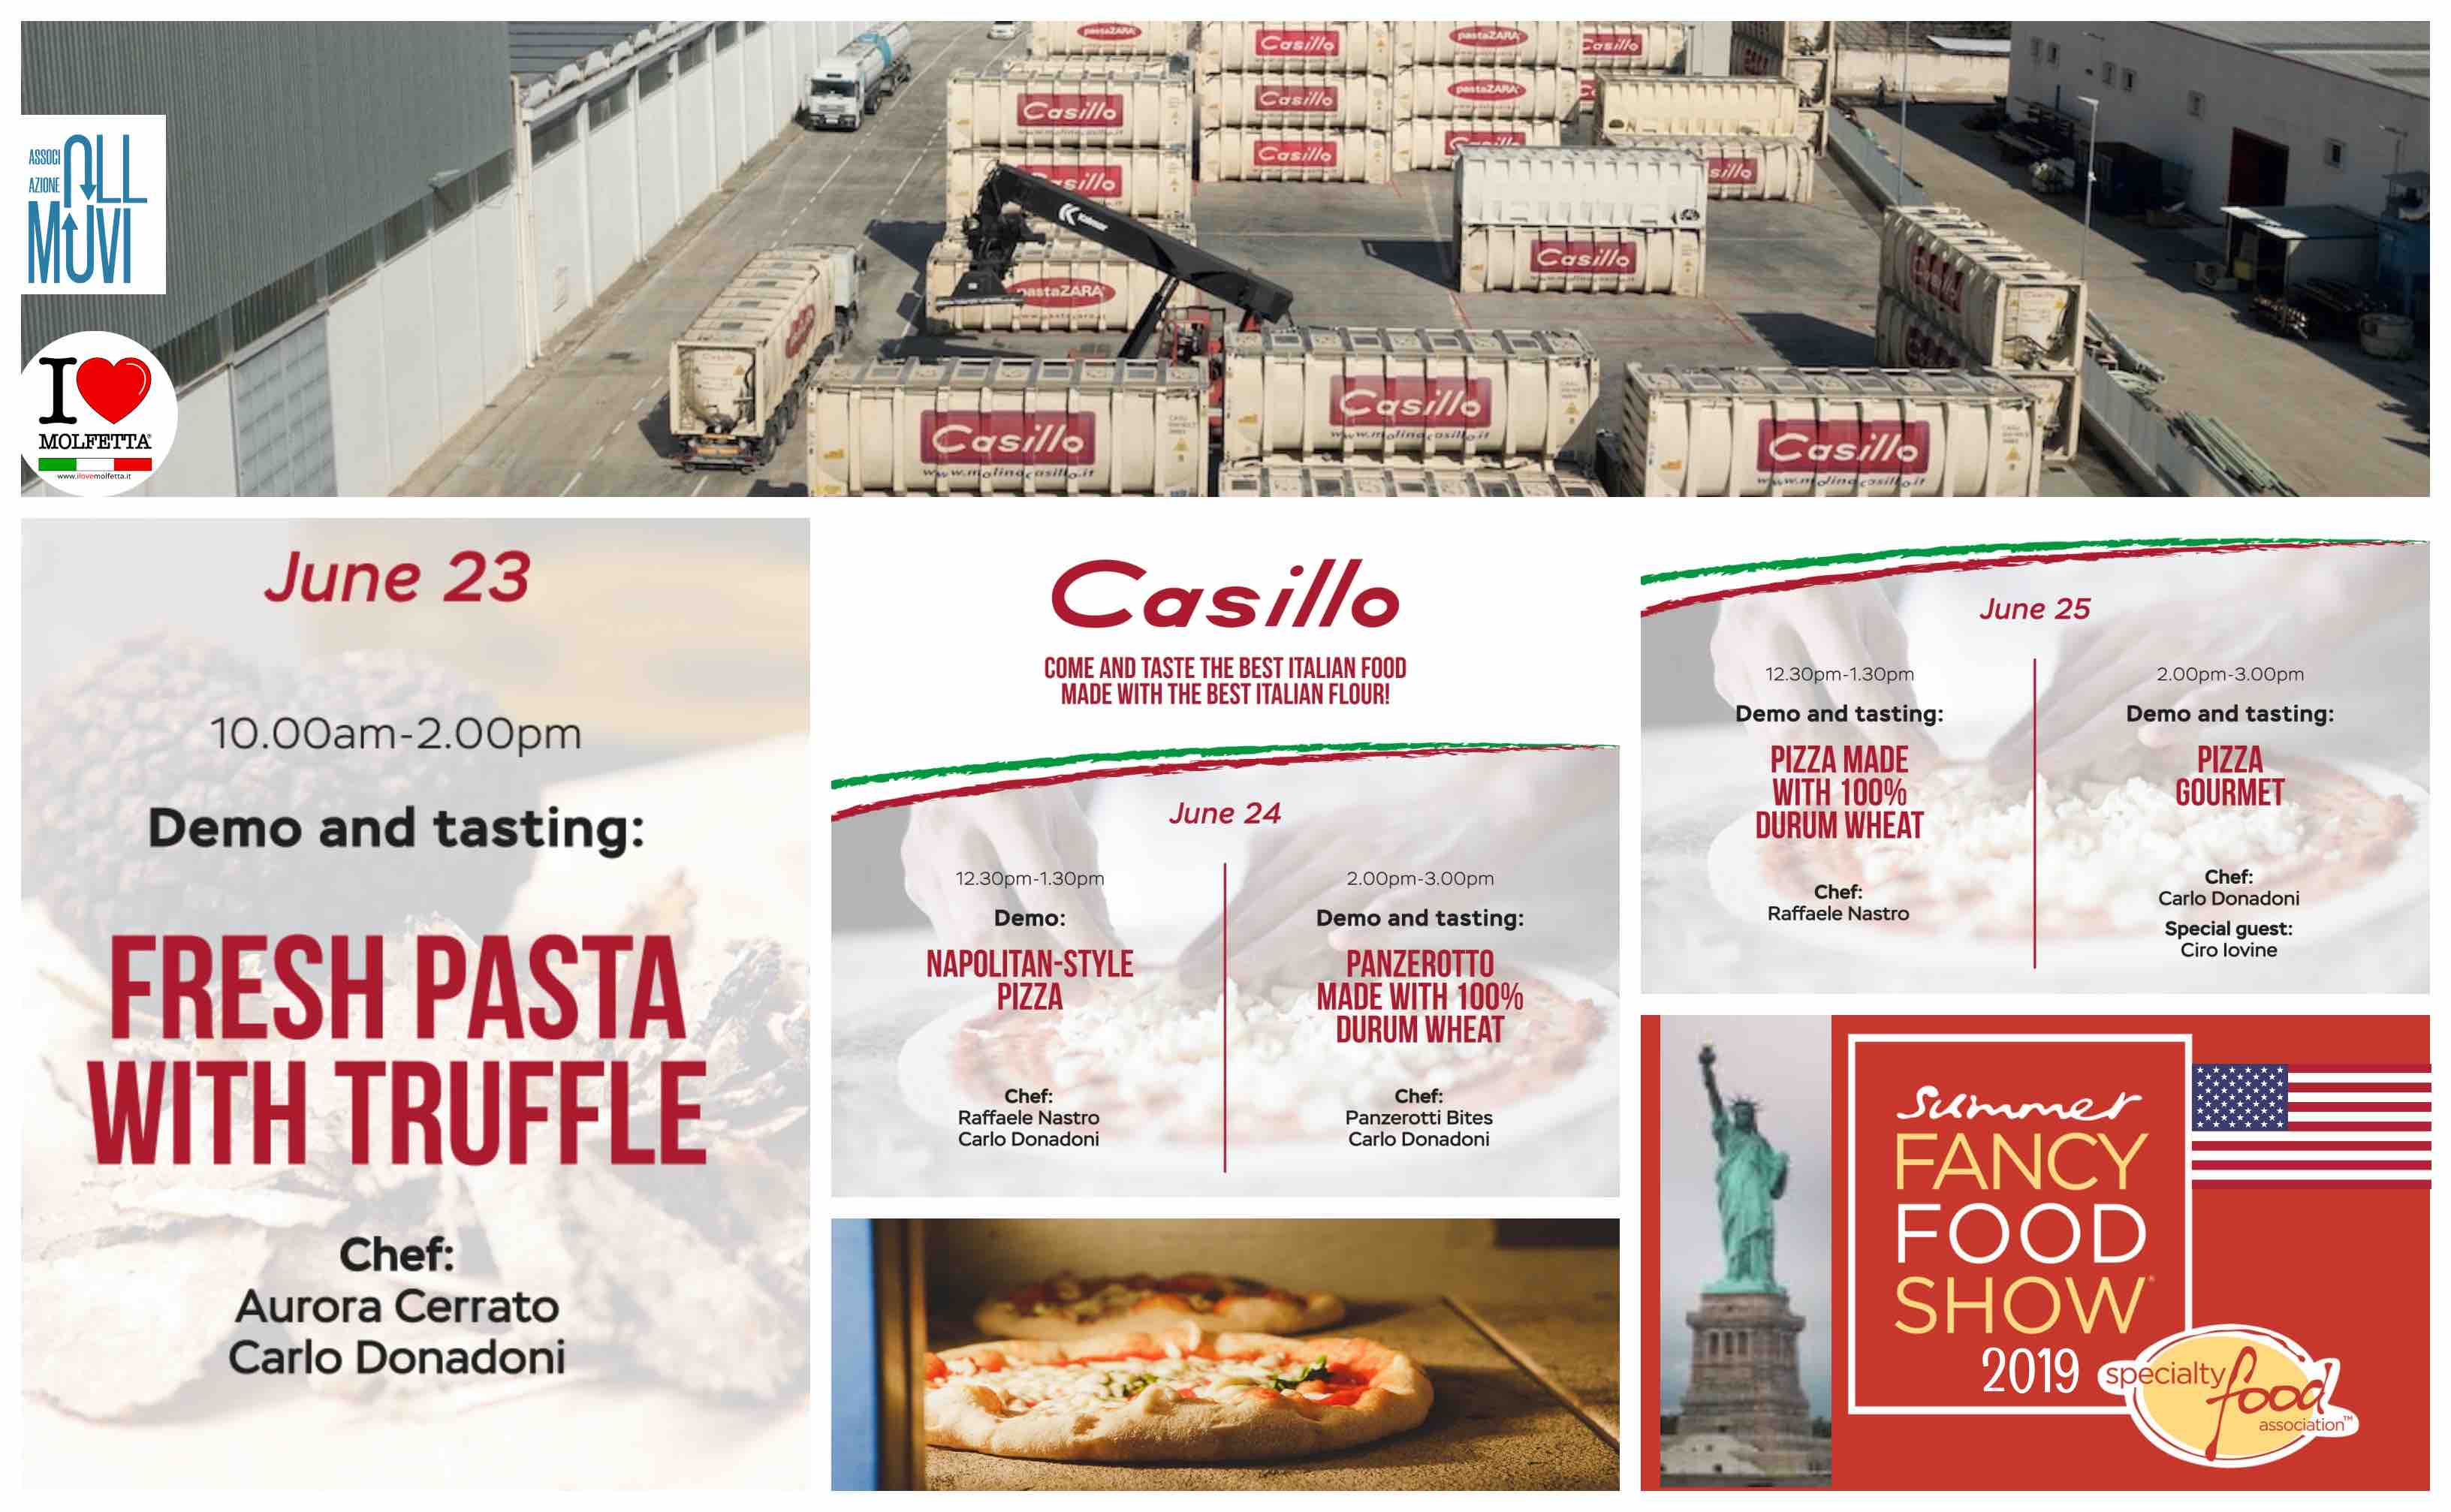 Fancy Food Show NYC 2019: Puglia, Casillo Group